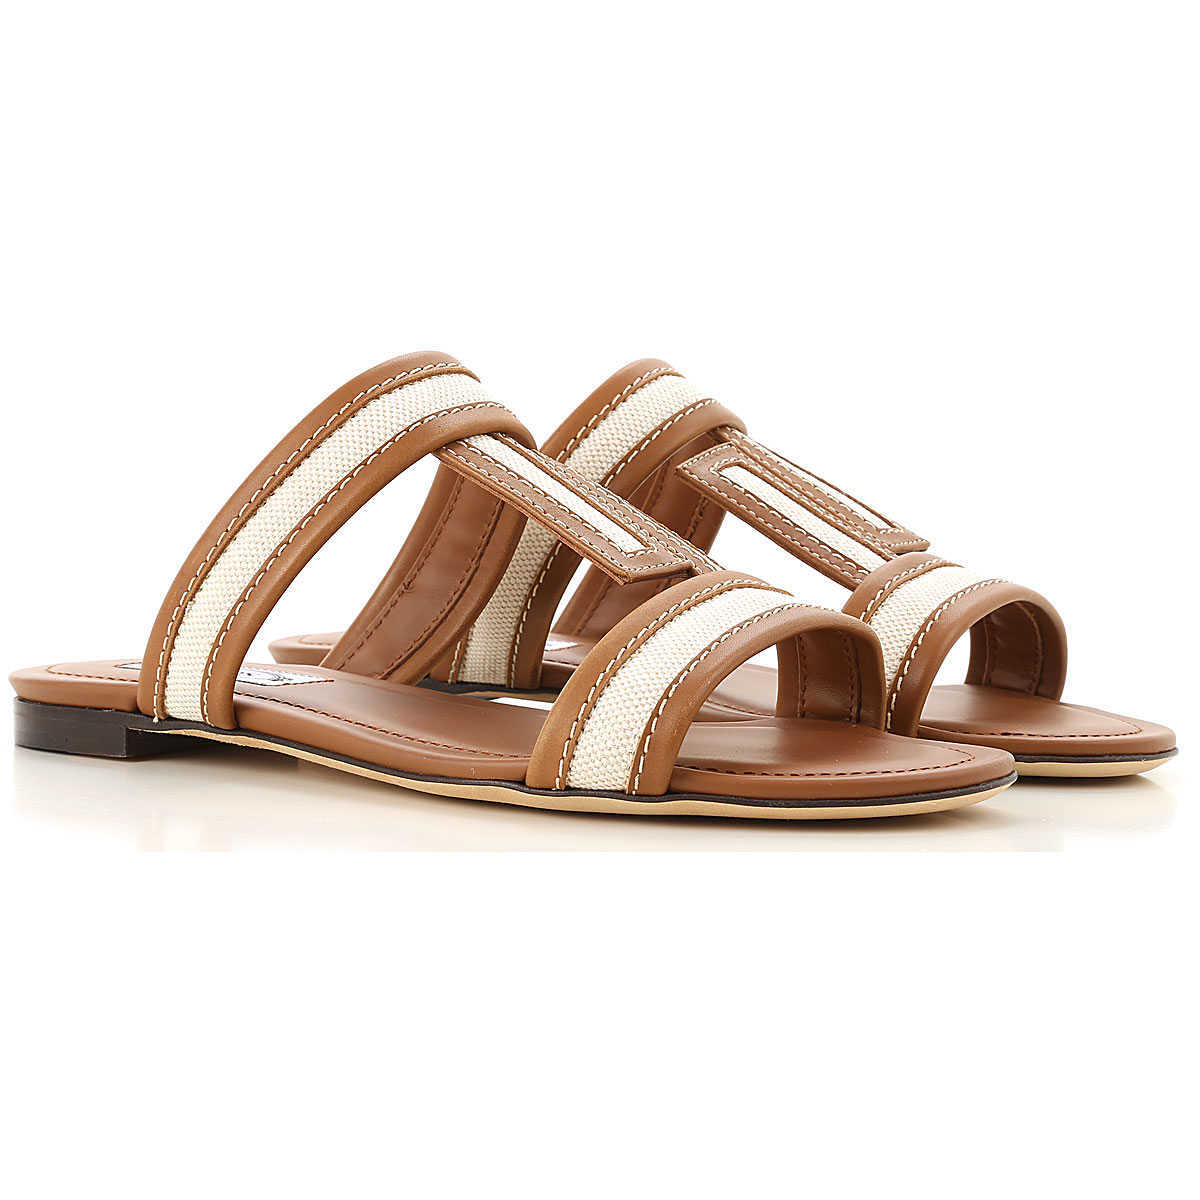 Tods Sandals for Women Leather Canada - GOOFASH - Womens SANDALS